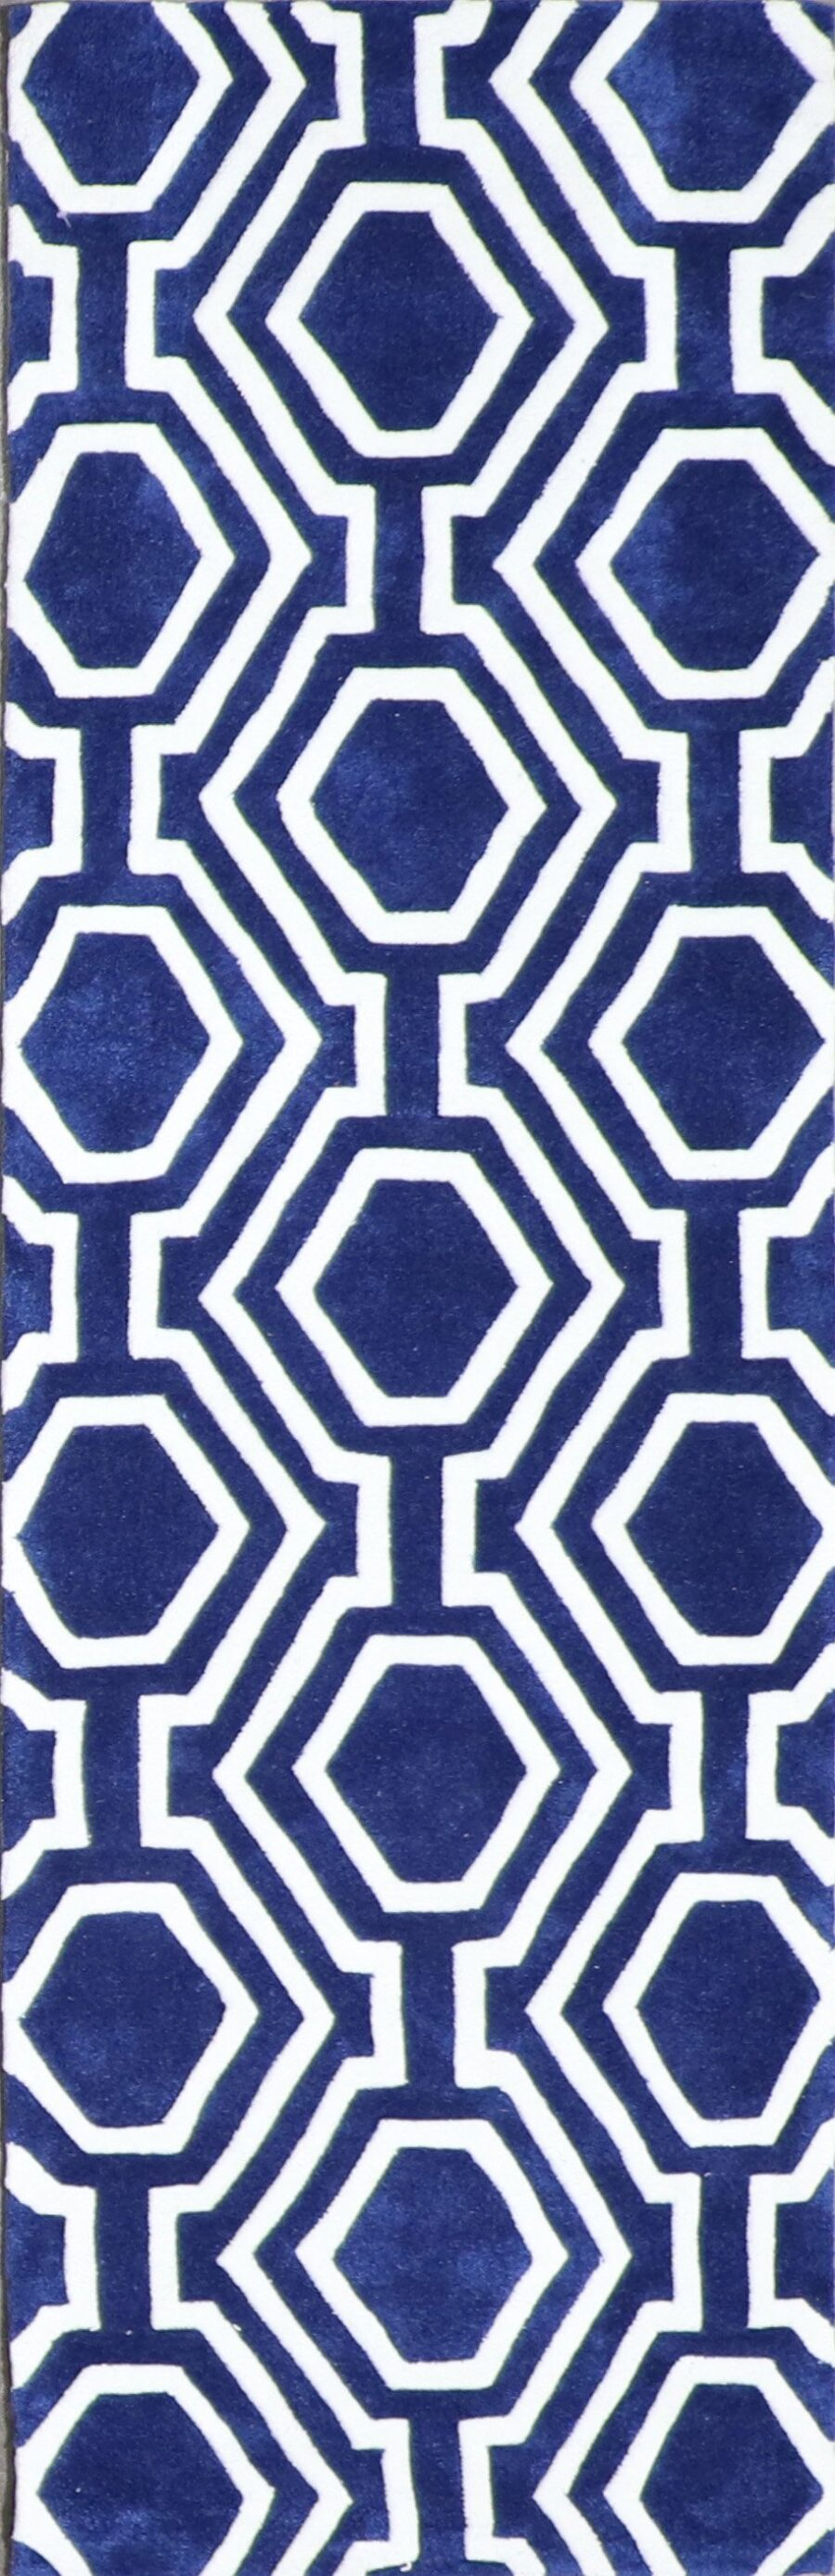 """2'3""""x7'5"""" Contemporary Wool Hand-Tufted Rug - Direct Rug Import   Rugs in Chicago, Indiana,South Bend,Granger"""